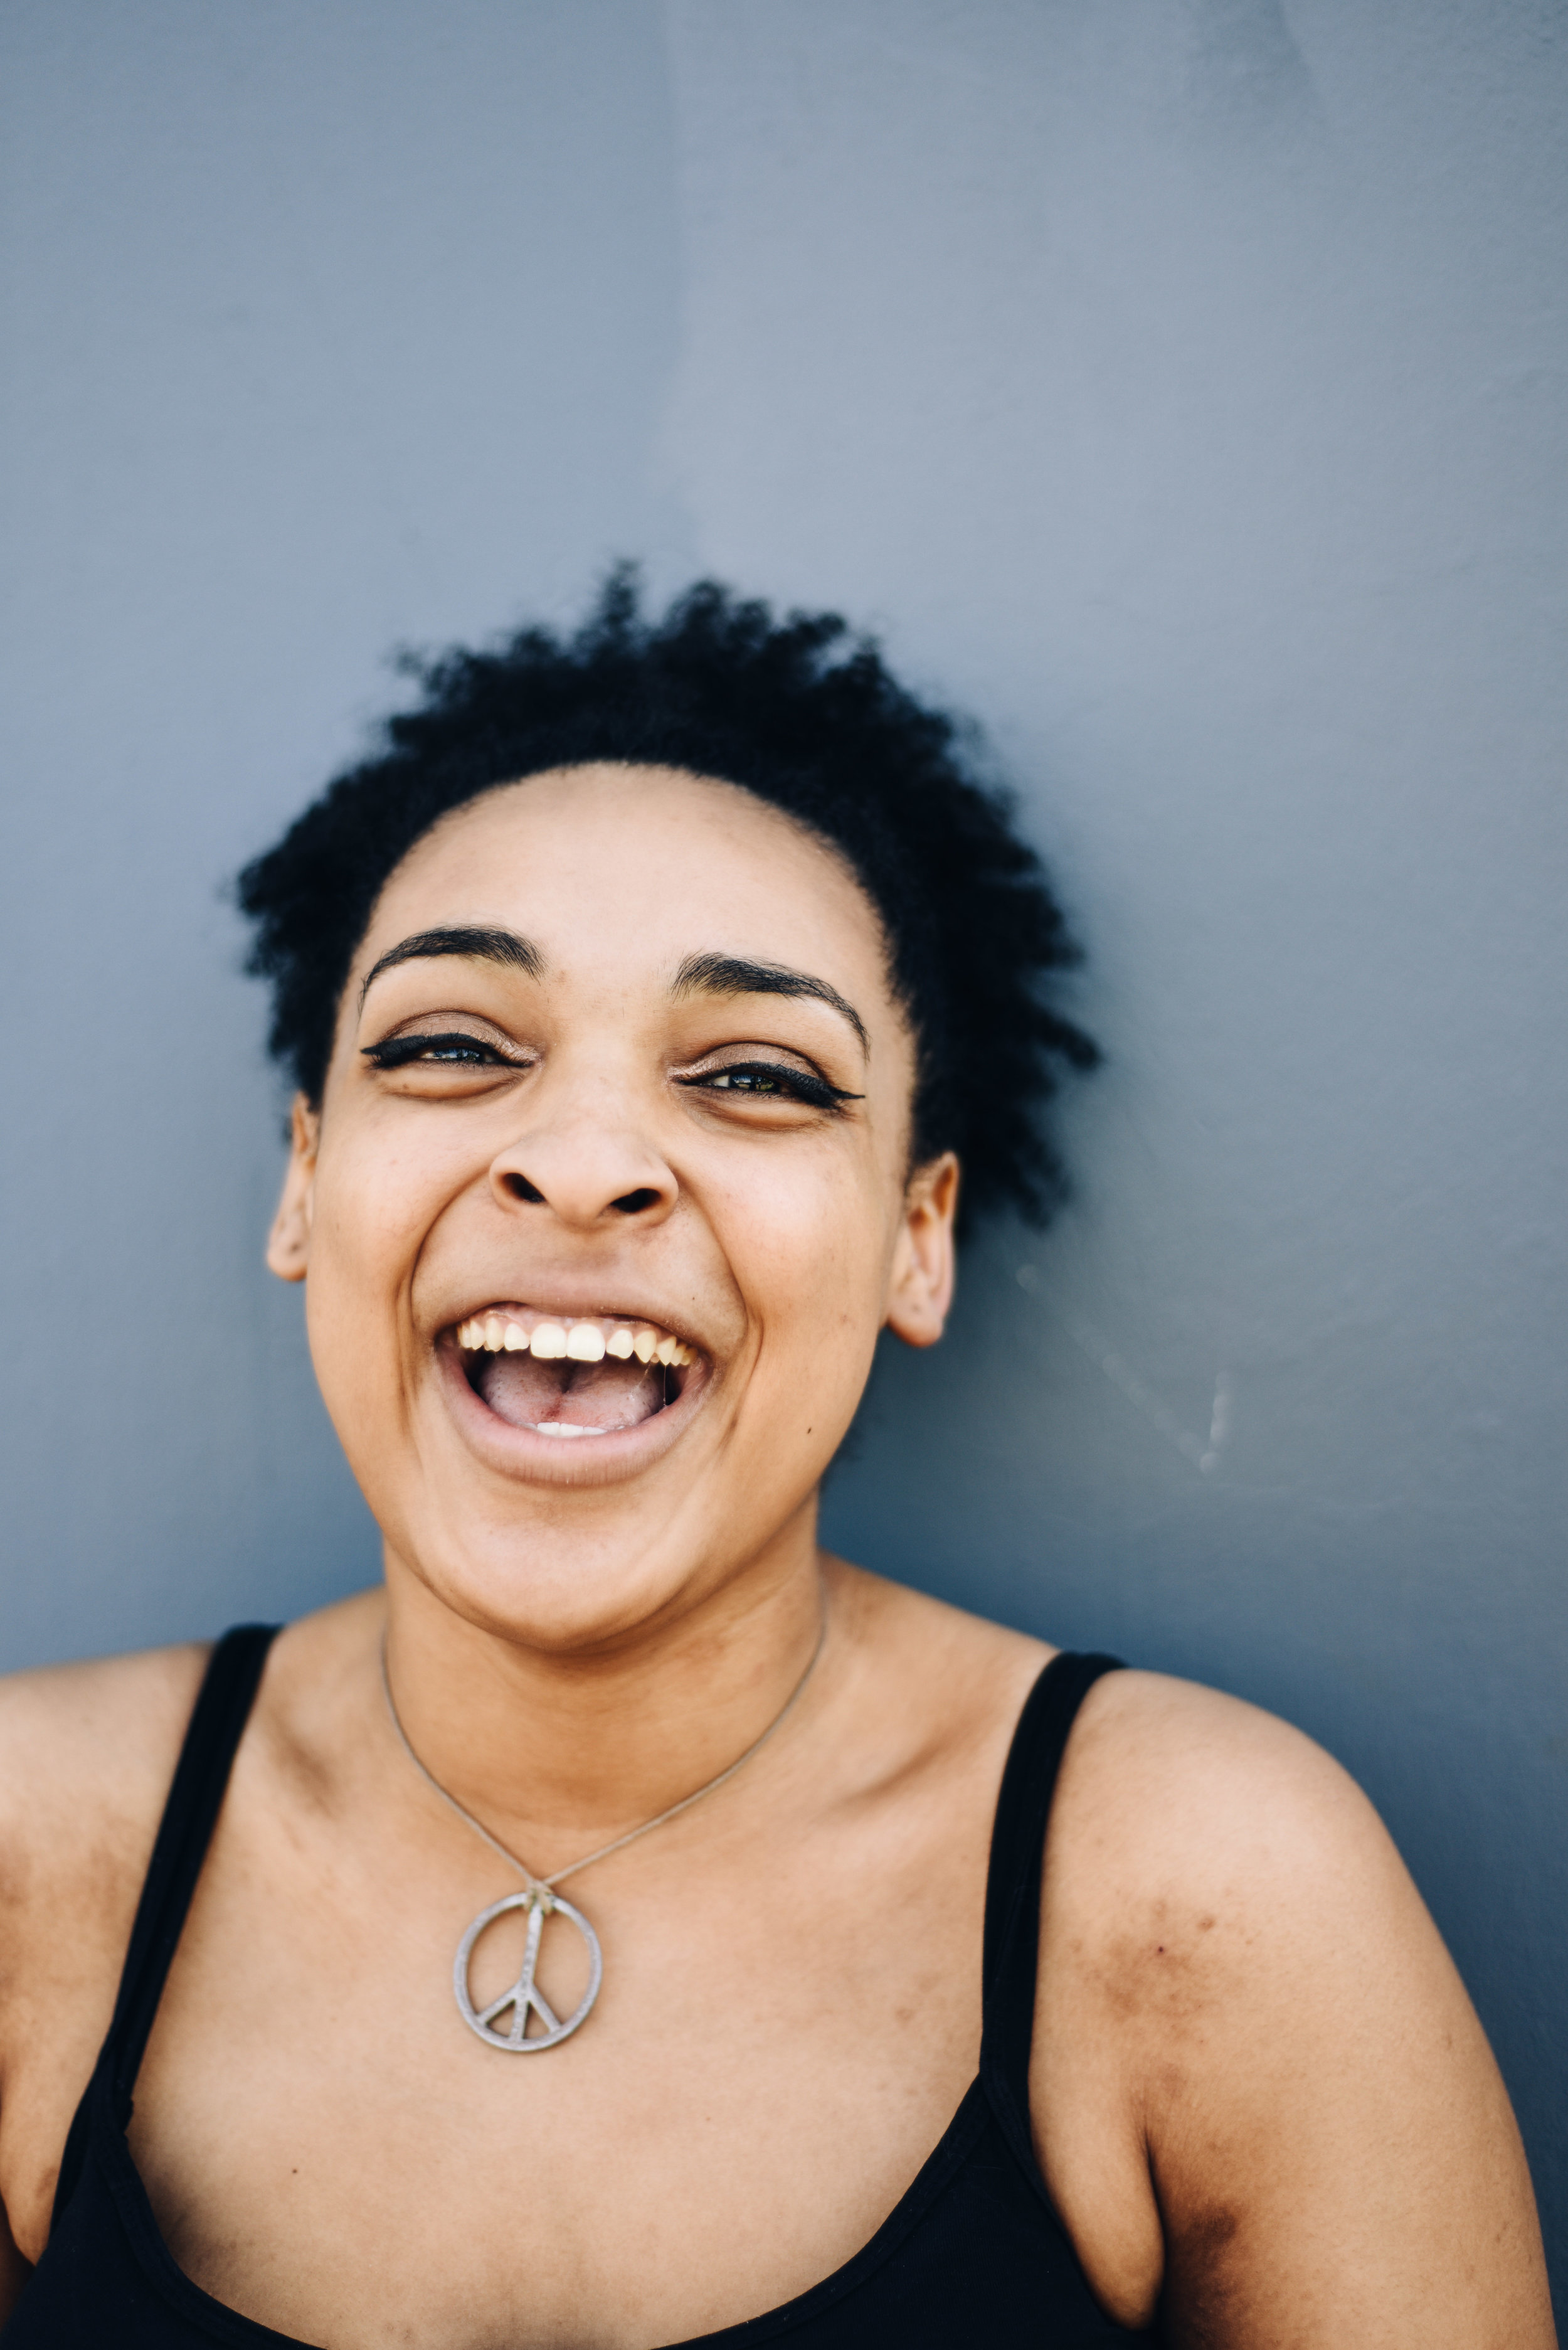 Kyra Orr - Kyra has been performing since her freshman year in high school having performed in the Portland August Wilson Monolog Competition and Who I Am: Celebrate Me. Most recently she was accepted to Portland Actors Conservatory. This residency will be first time she taking the stage alone with her own words. This makes her feel rather vulnerable but I isn't that the point.